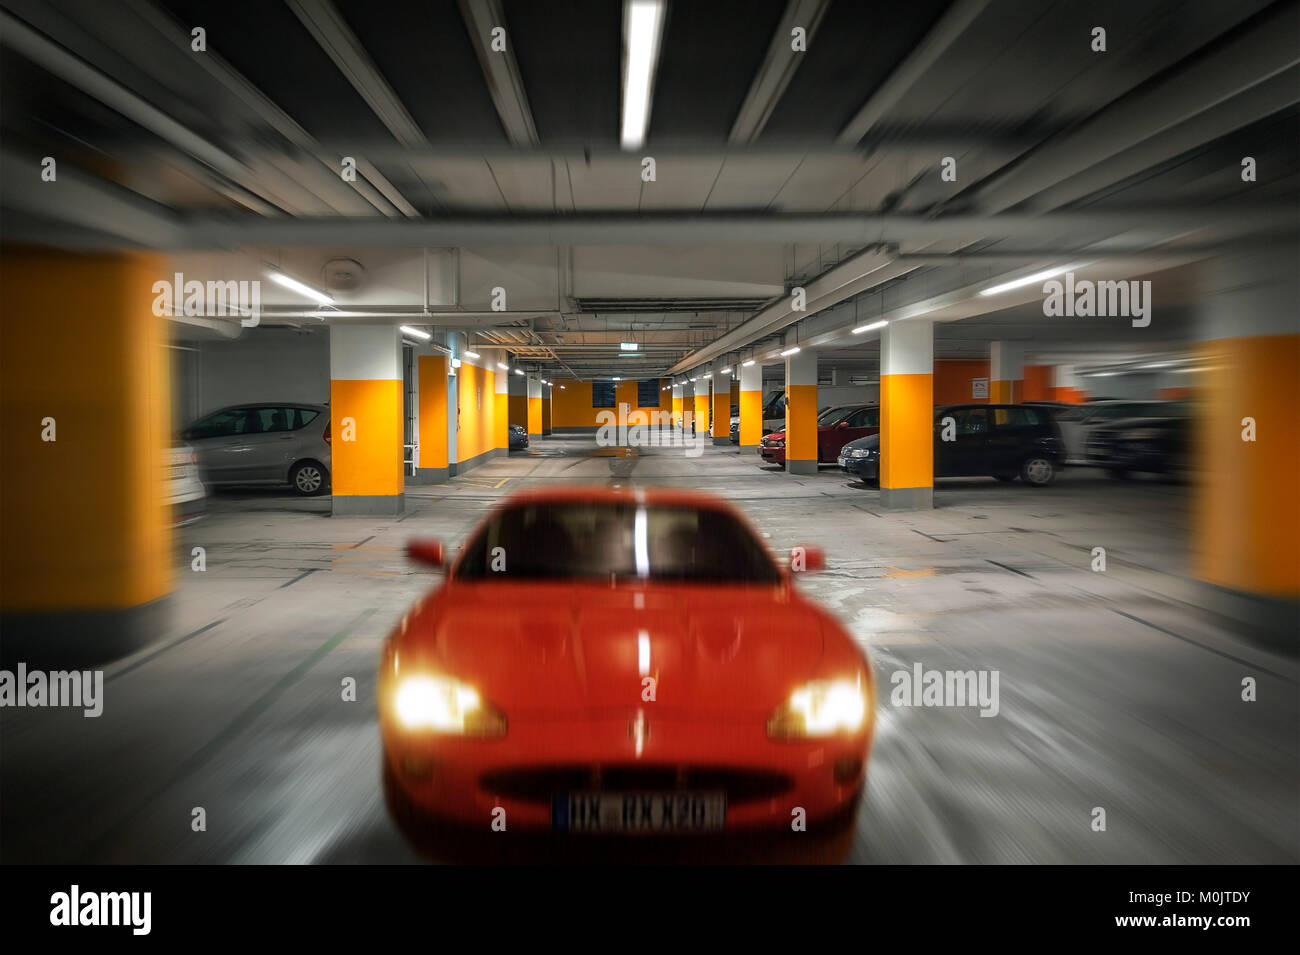 Car drives in underground garage, Germany - Stock Image